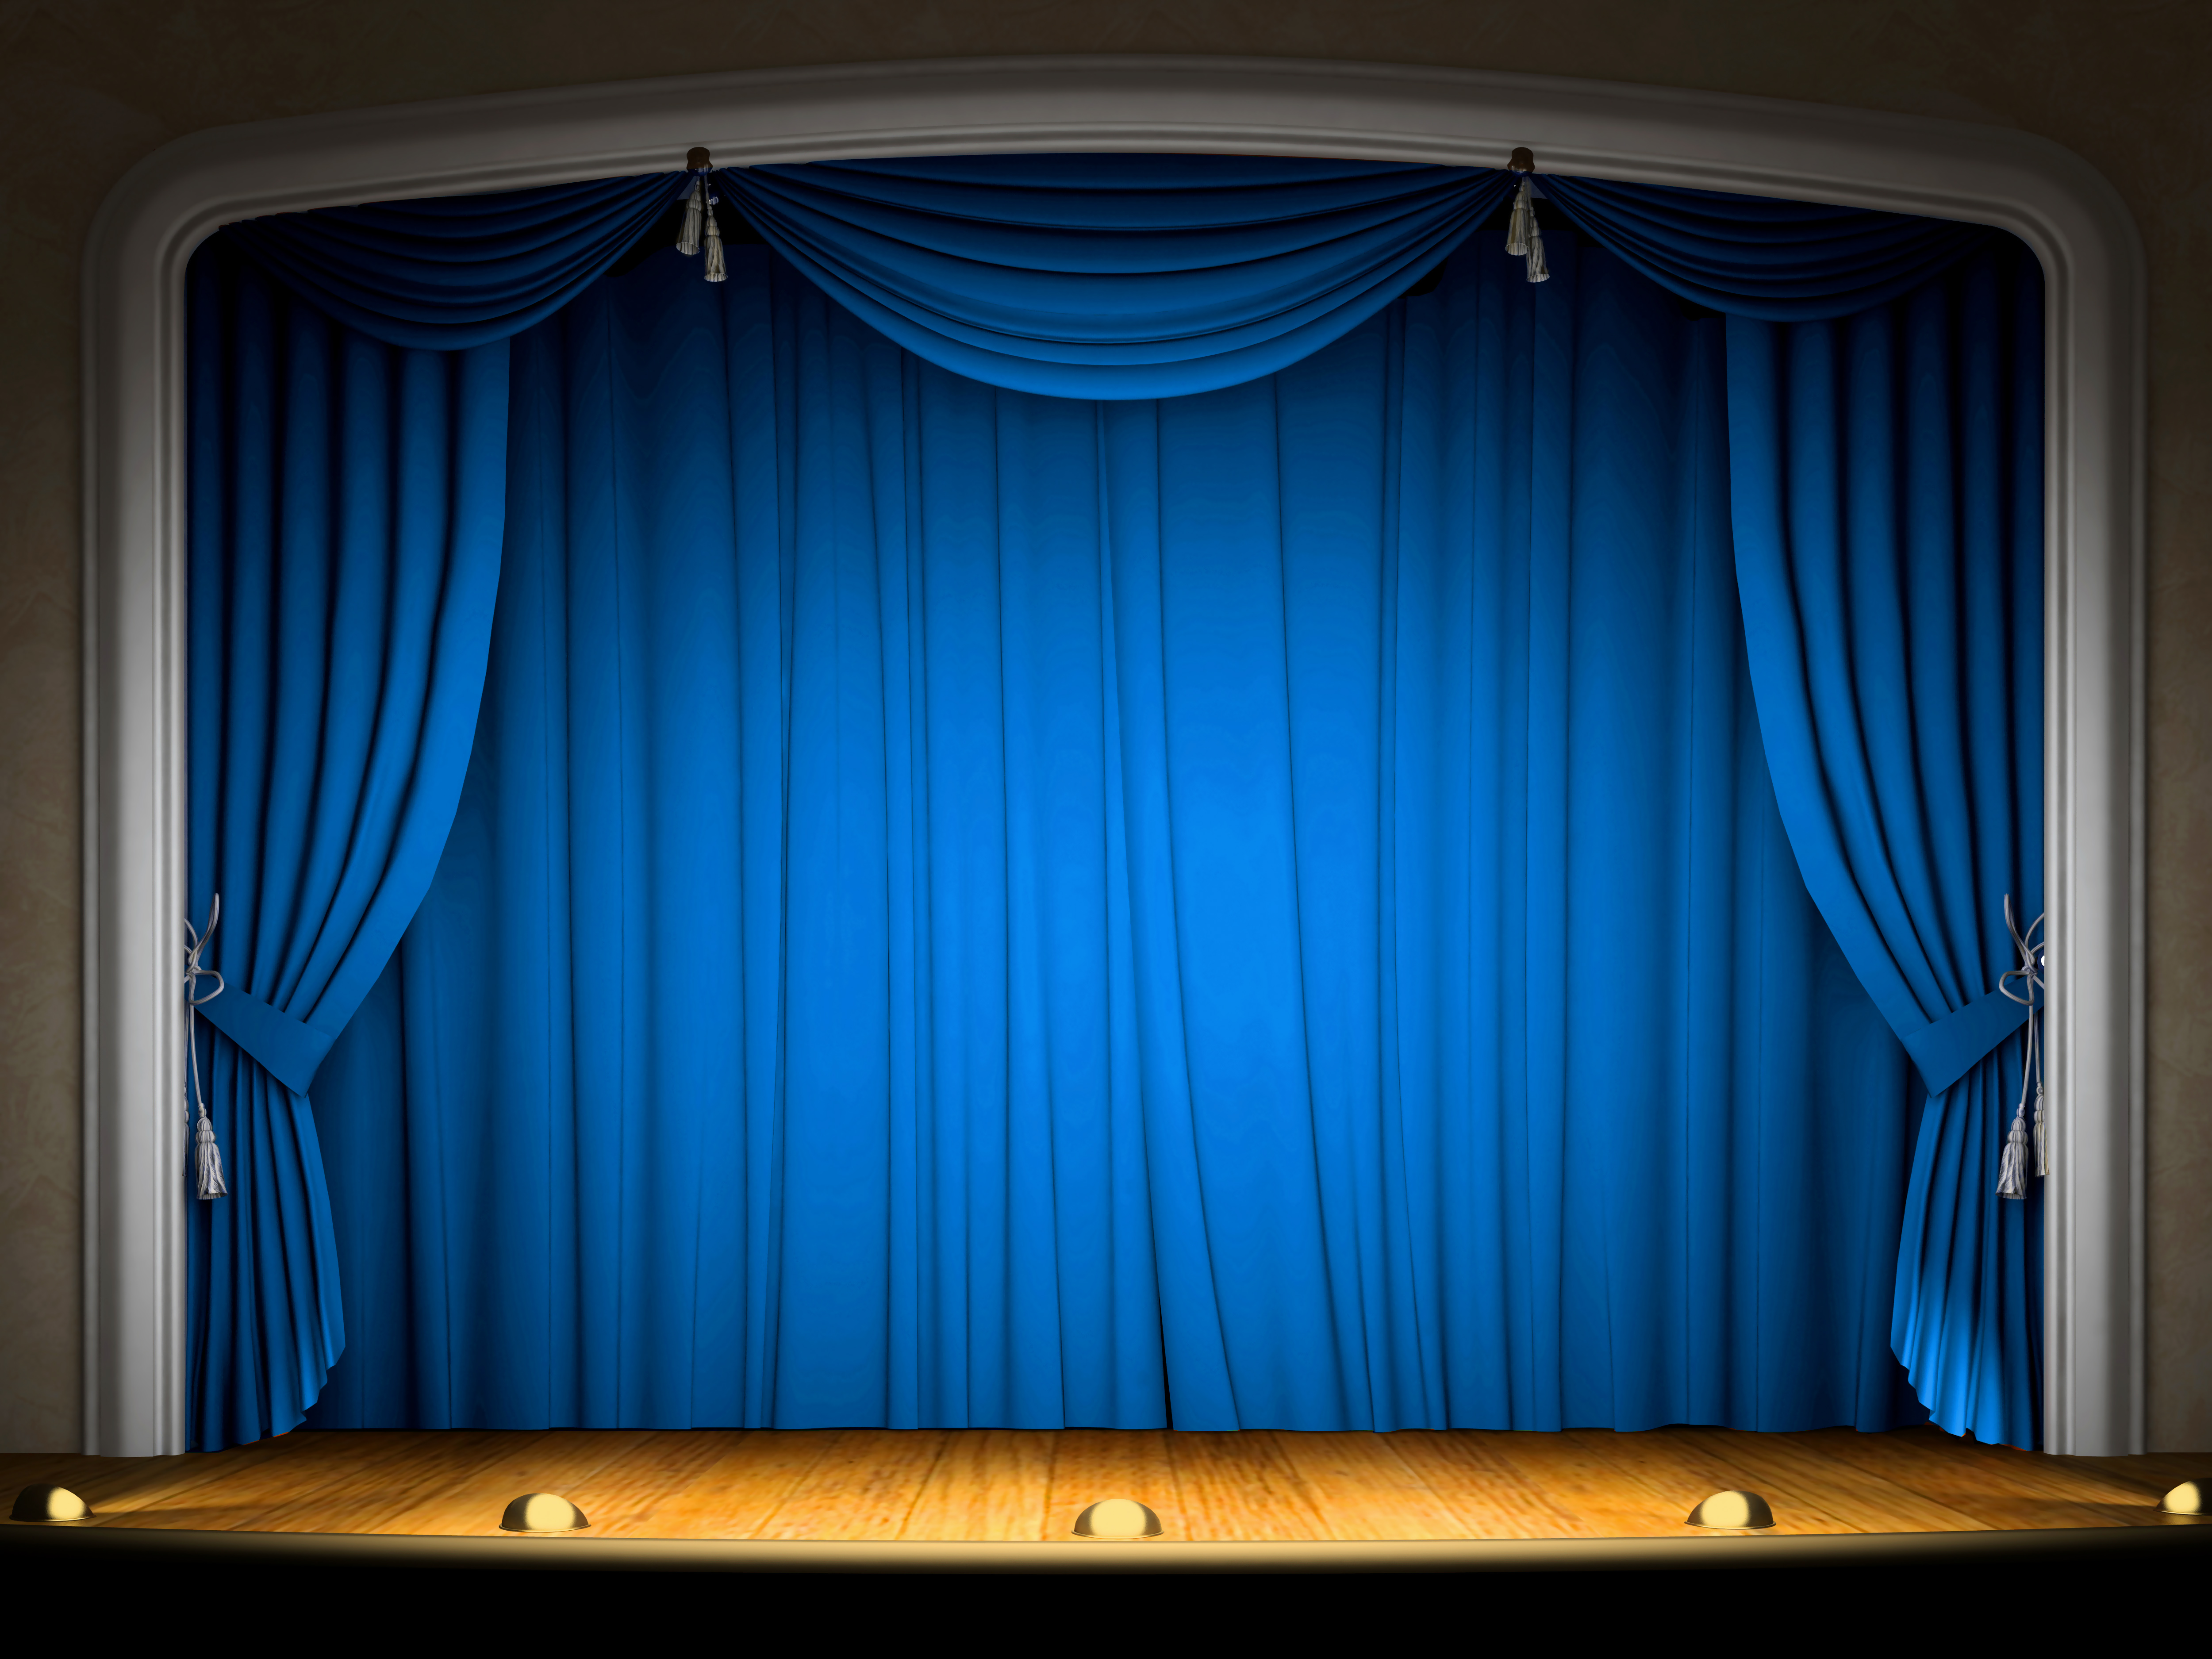 With blue curtains gallery. Background clipart stage